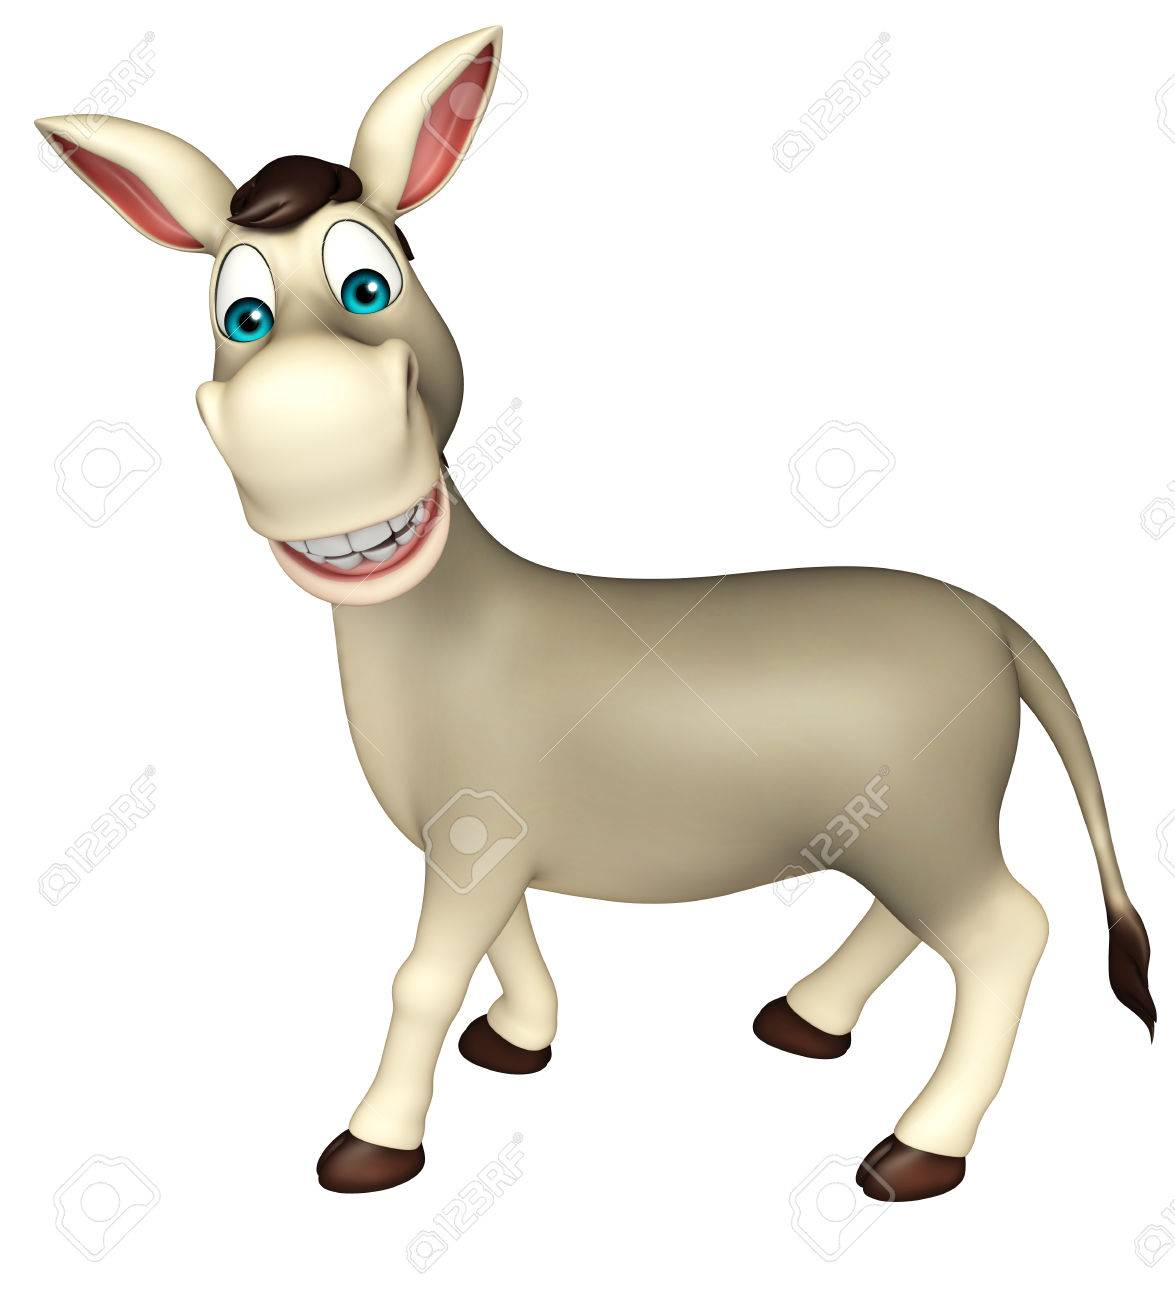 1175x1300 3d Rendered Illustration Of Donkey Funny Cartoon Character Stock